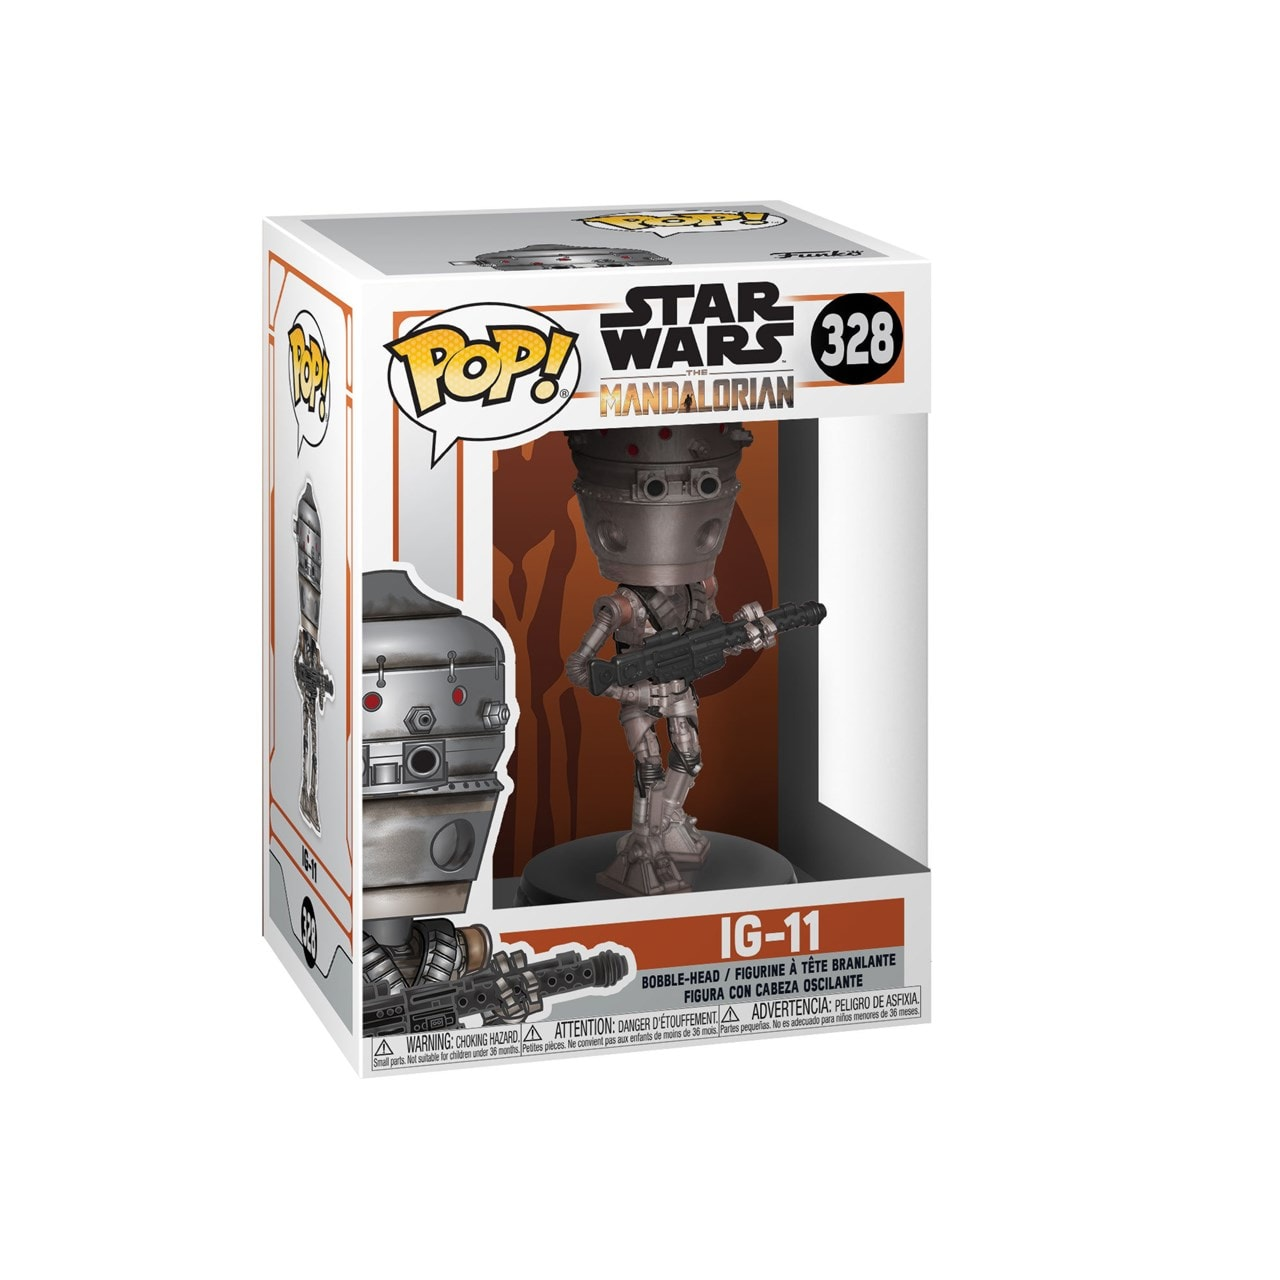 Pop Vinyl: Ig-11 (328): Mandalorian: Star Wars - 2